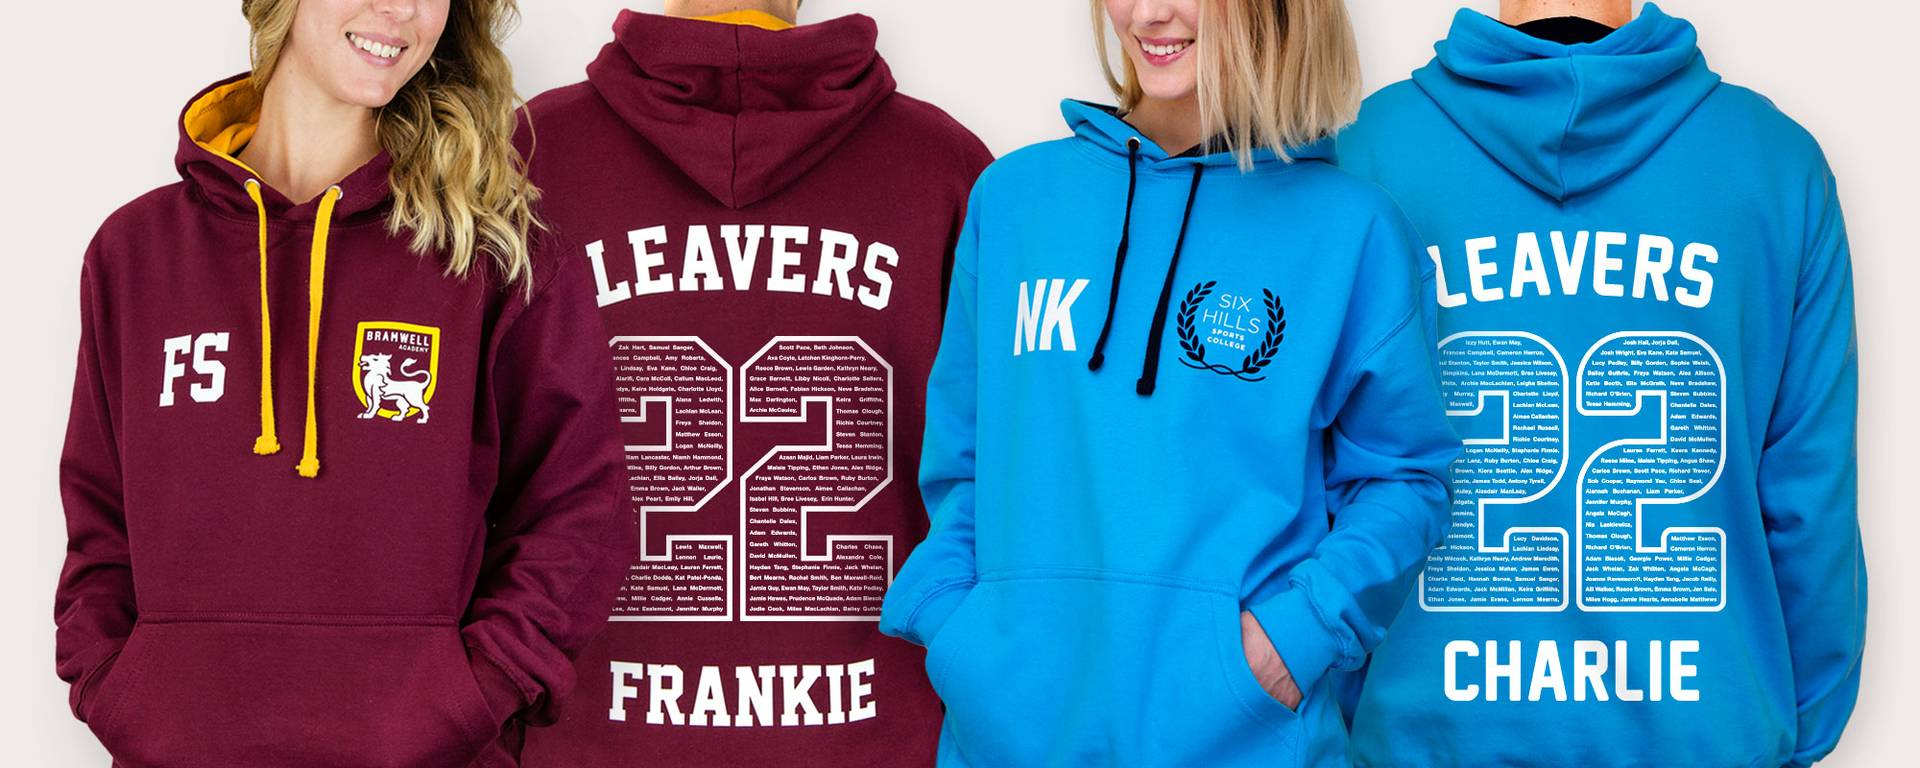 Students in colourful school leavers hoodies with a large 22 printed on the back